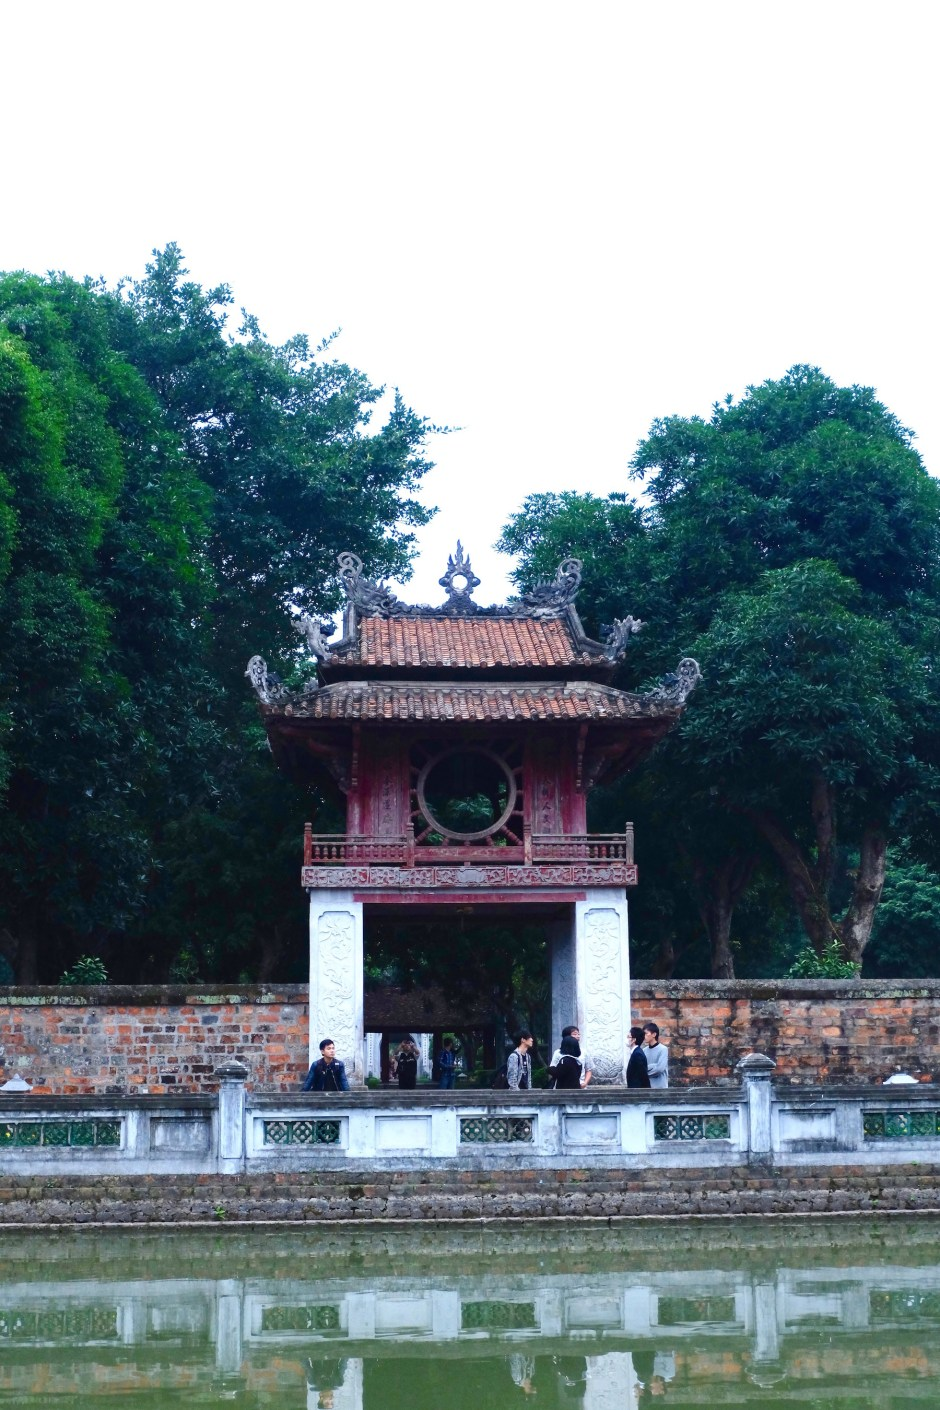 Oldest University in Hanoi